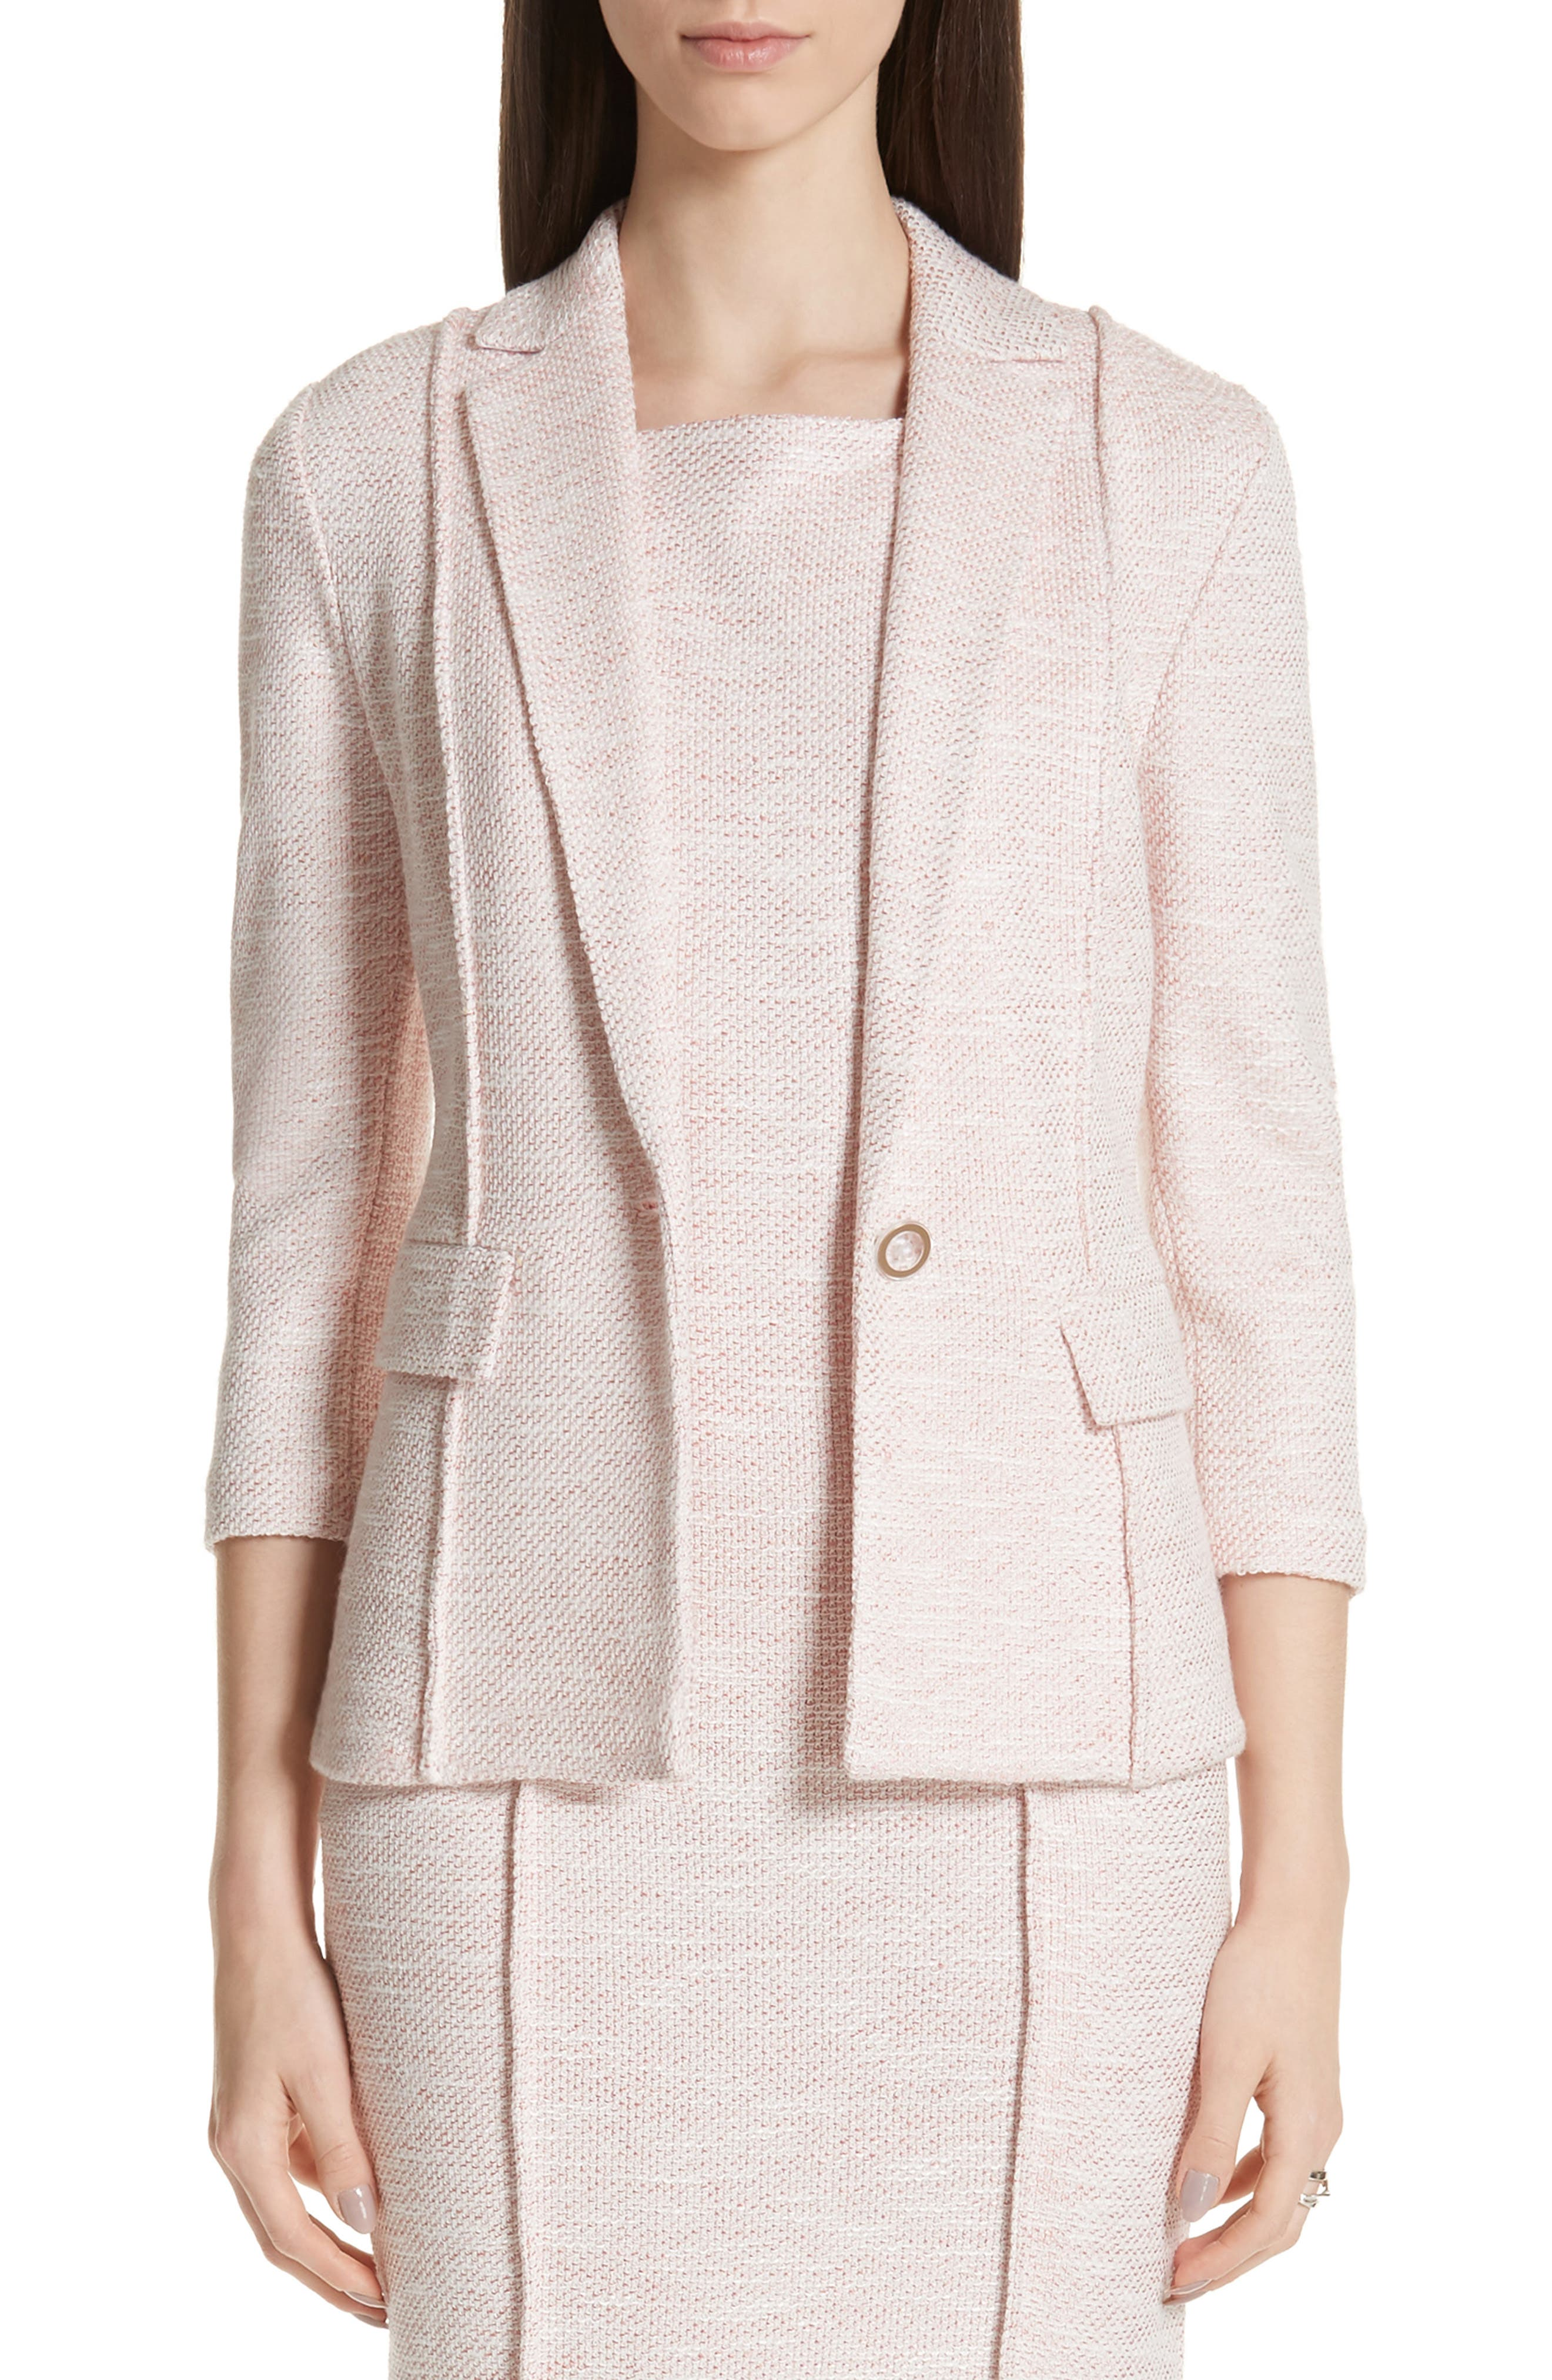 ST. JOHN COLLECTION, Belinda Knit Jacket, Main thumbnail 1, color, WHITE/ CORAL MULTI